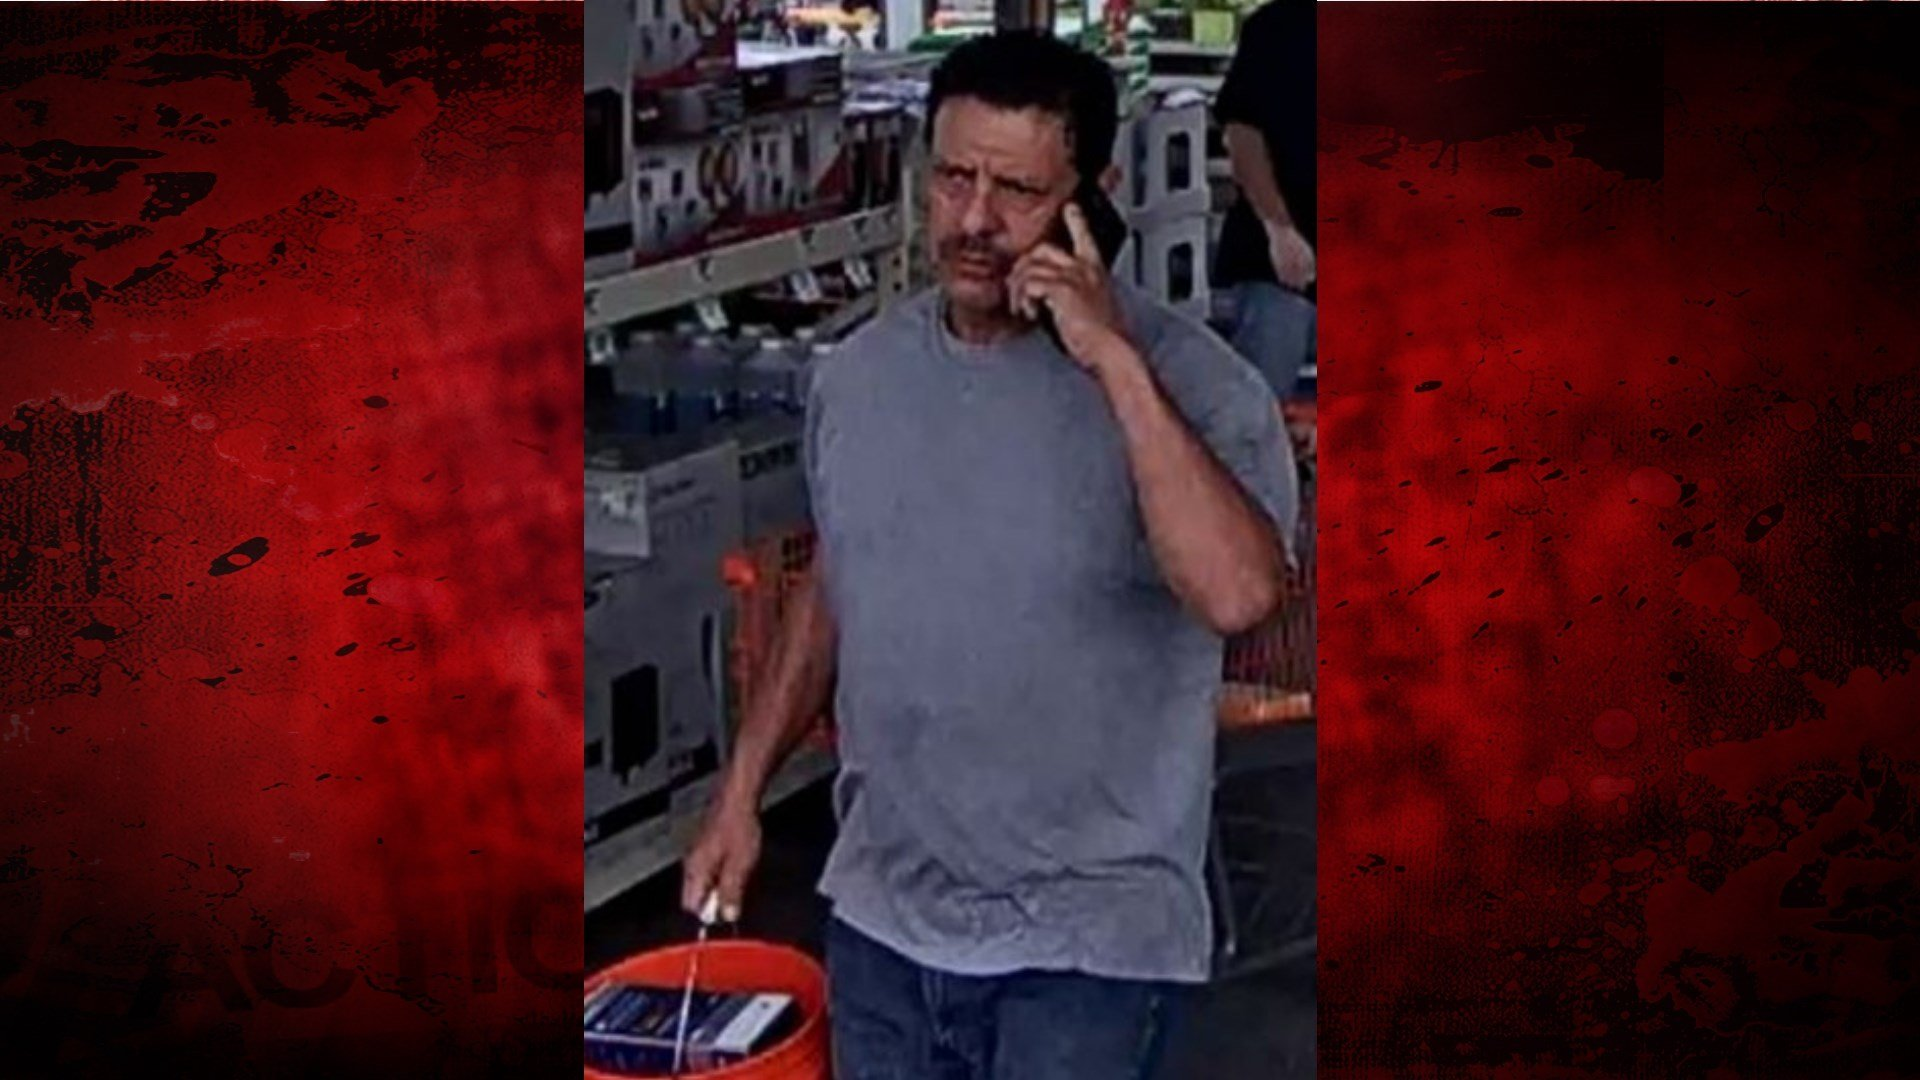 Man accused of several thefts from Home Depot KZTV